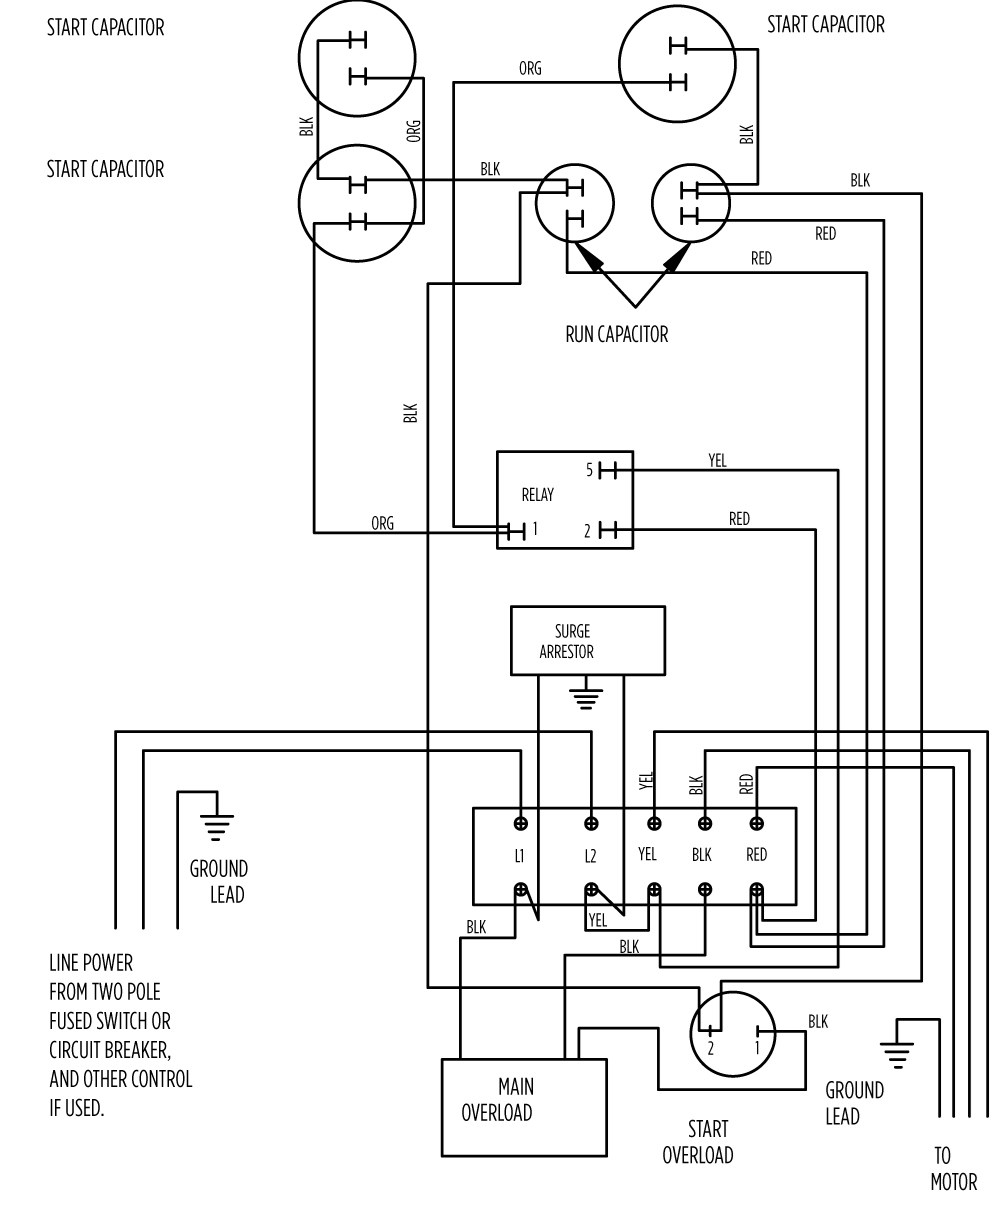 10 hp electric motor wiring diagram schematic diagram rh hww werderfriesen de